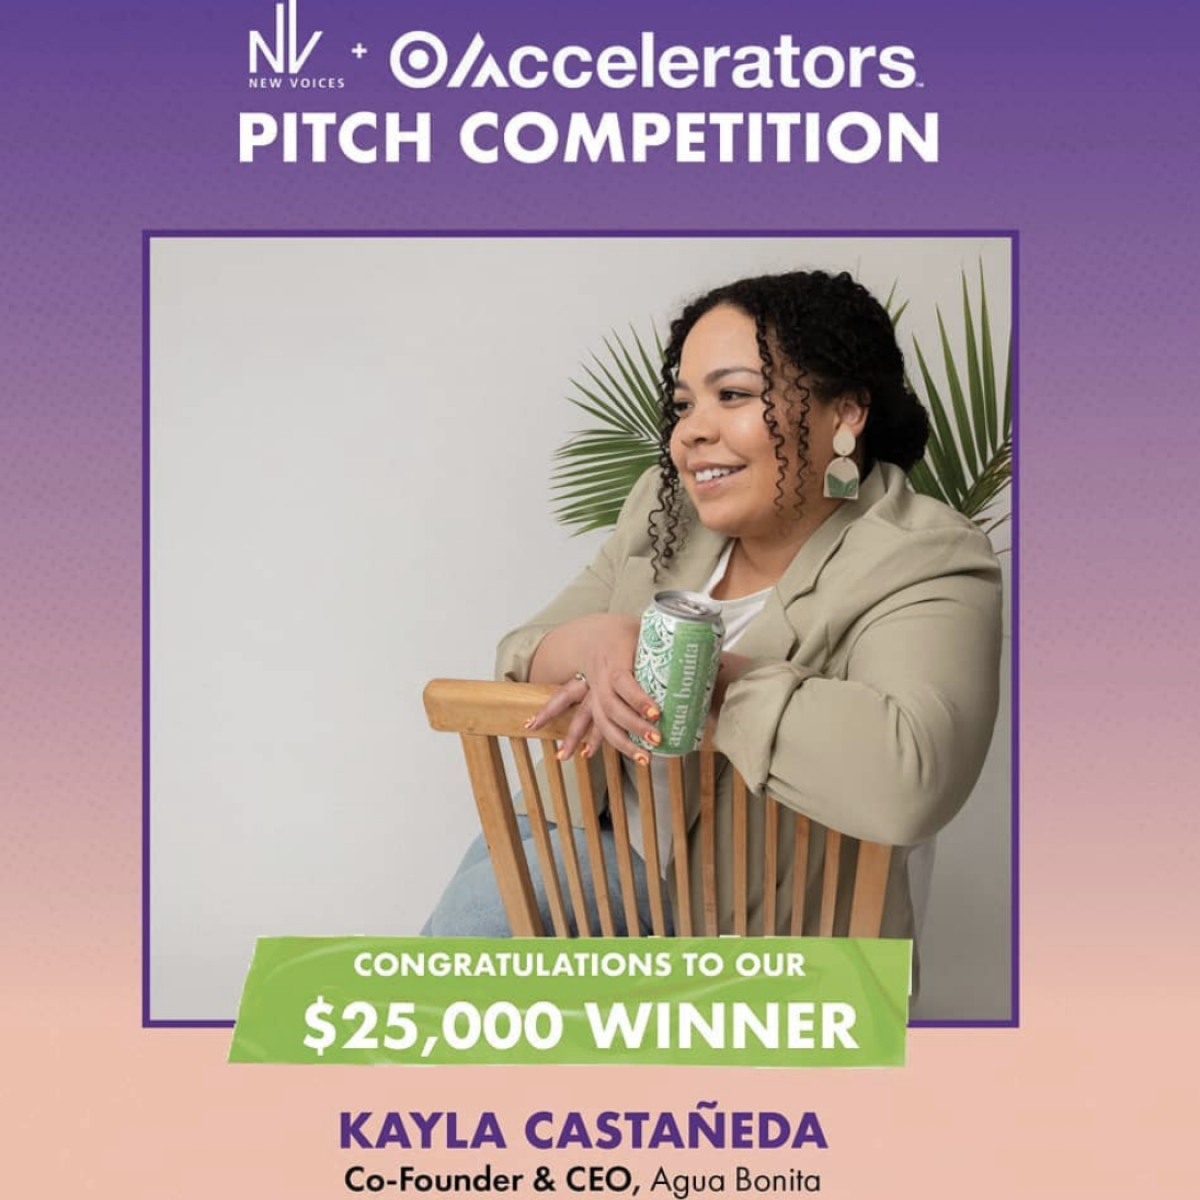 Entrepreneur Kayla Castaneda Wins $25,000 In New Voices + Target Accelerators Pitch Competition